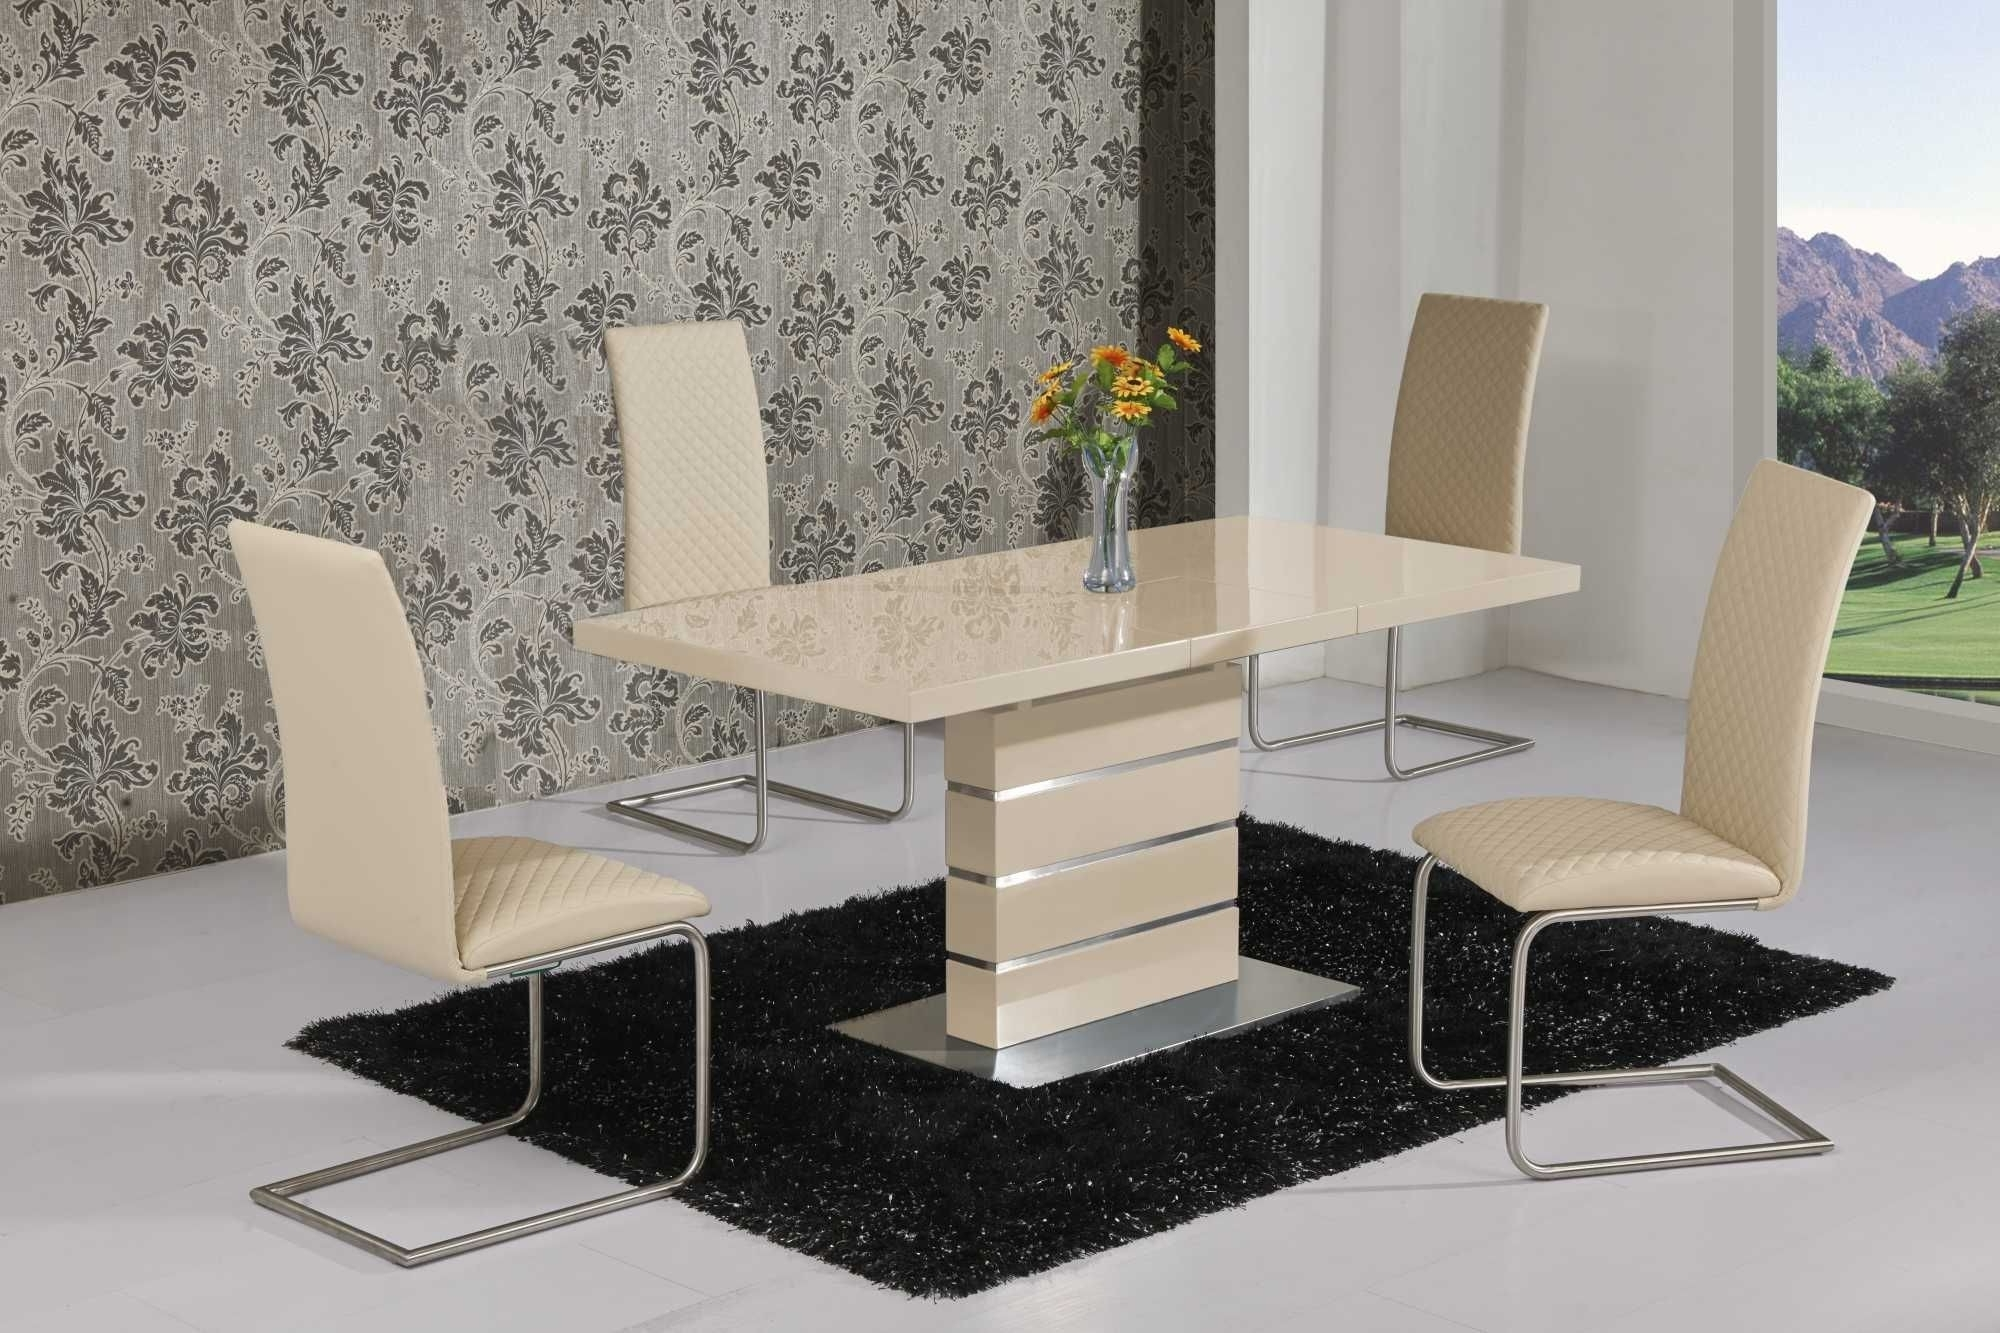 Buy Allison Small Cream Extending Dining Table 120Cm – 160Cm Regarding Latest Cream Lacquer Dining Tables (View 10 of 25)